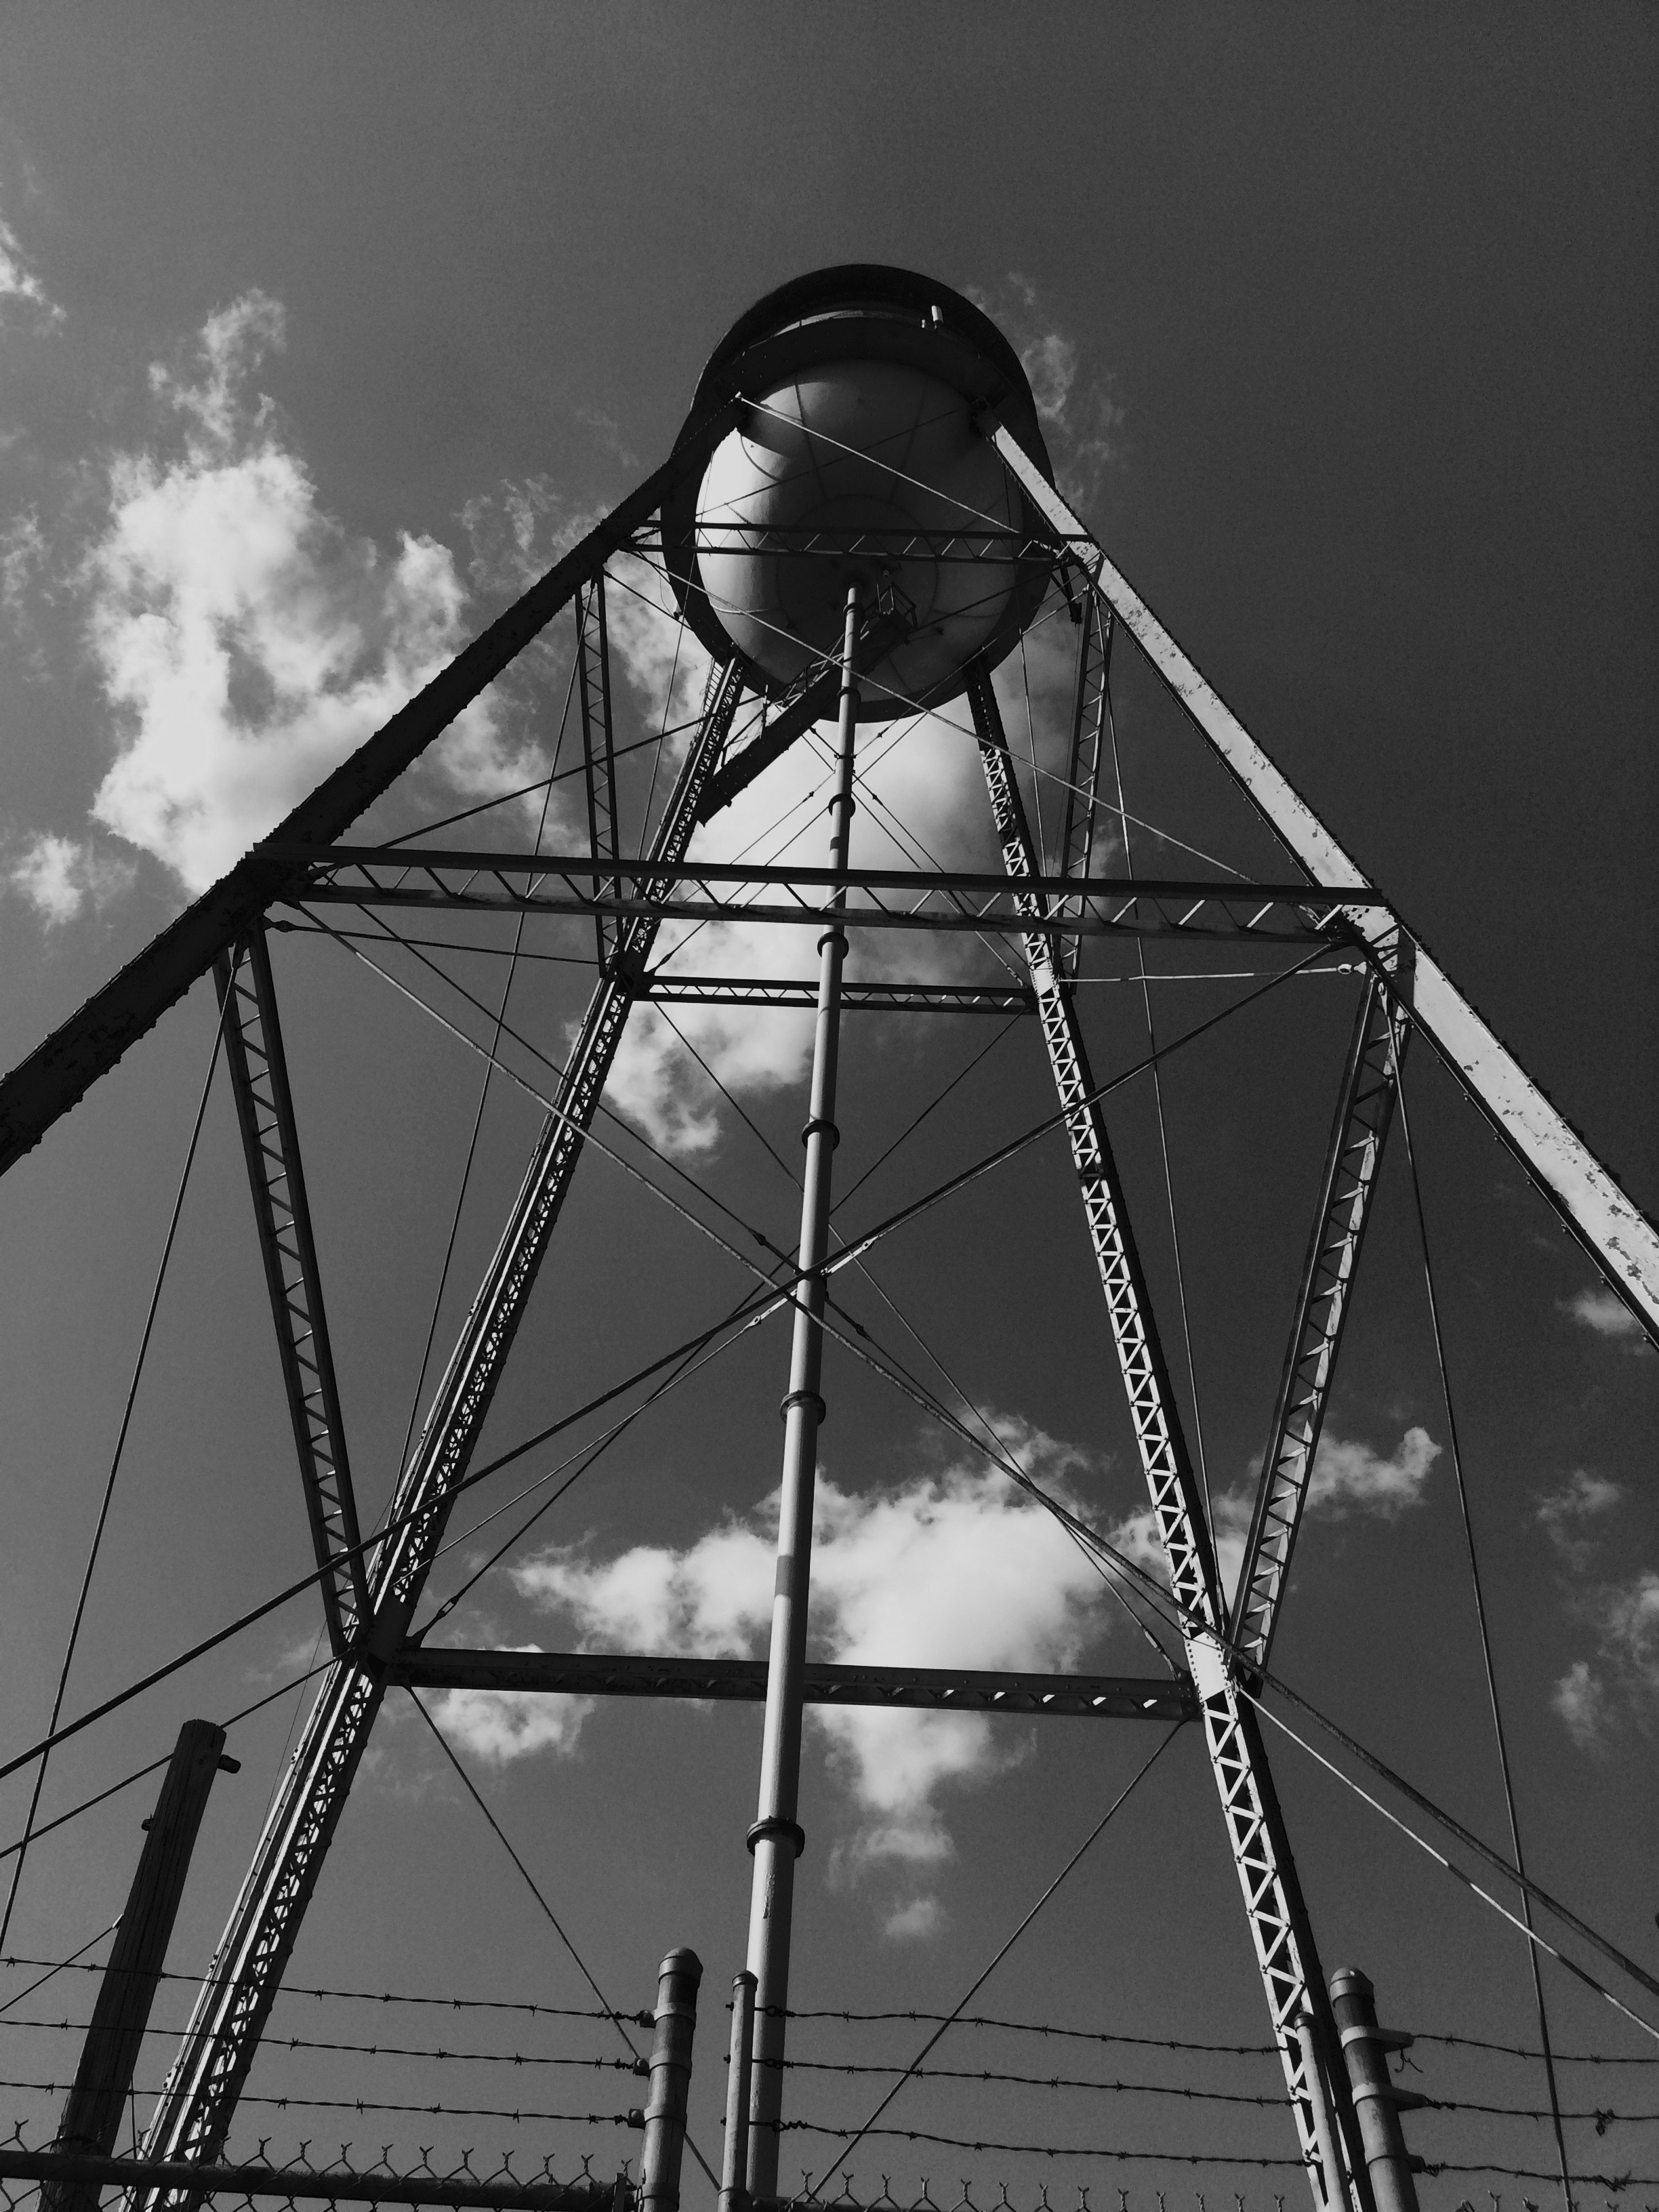 View of Linden's 1934 water tank from south side of pump house located under the tower.